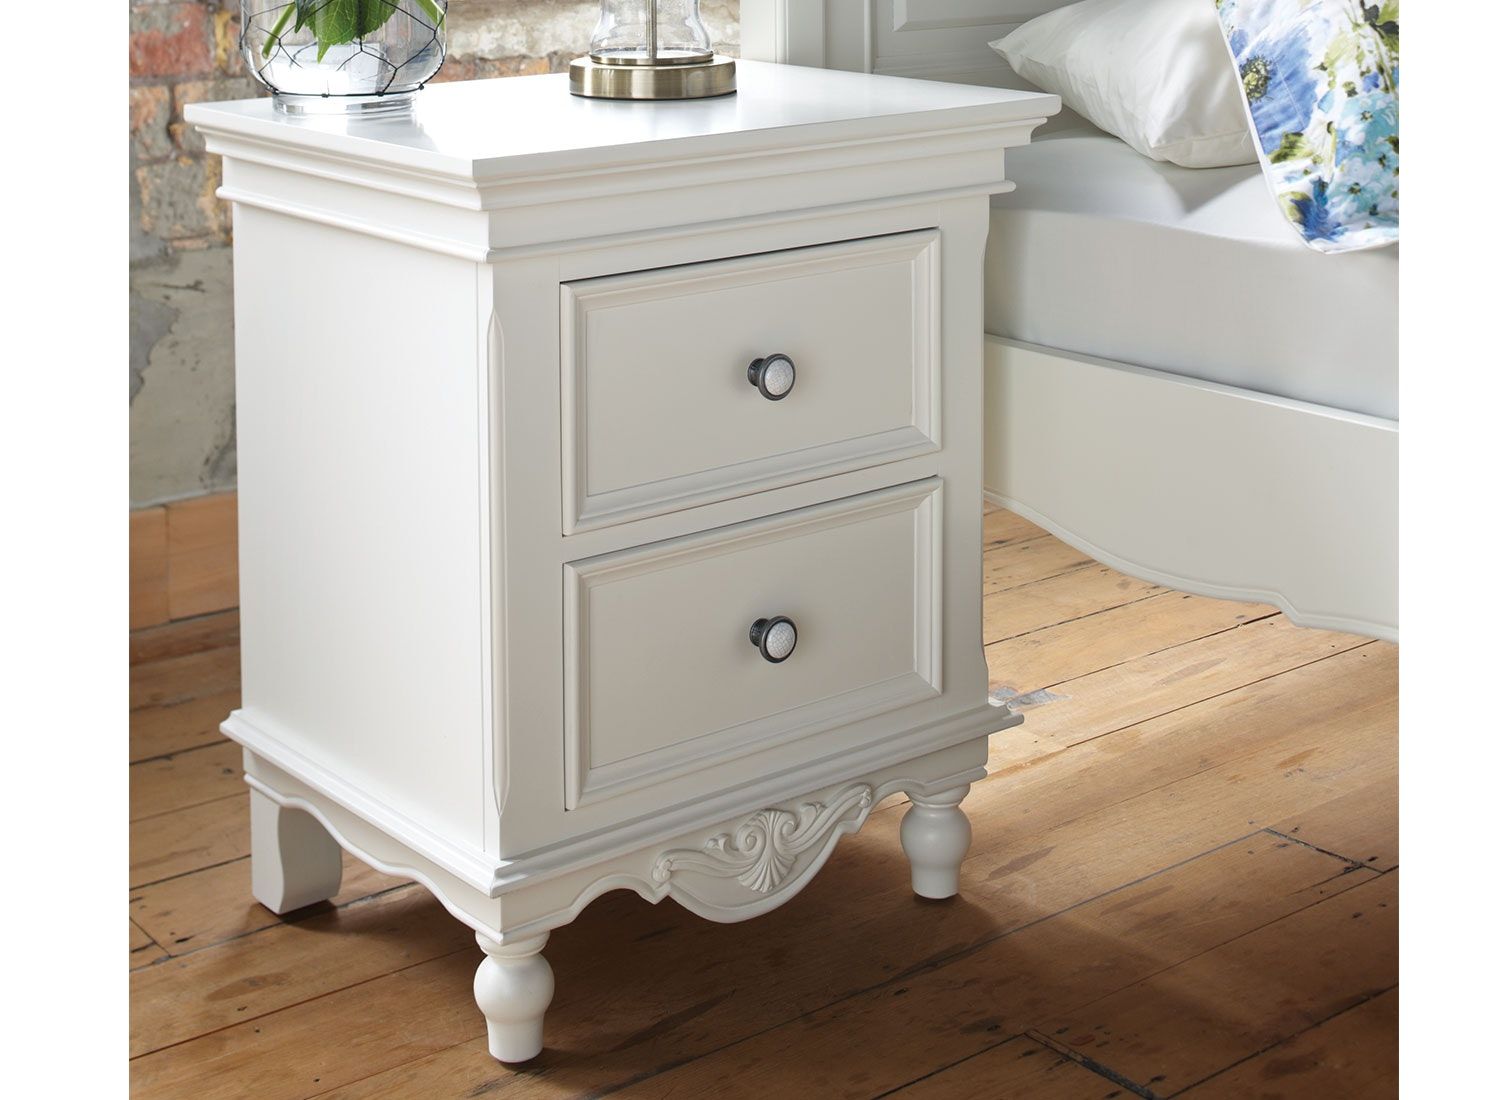 Bianca 2 Drawer Bedside Table by Garry Masters